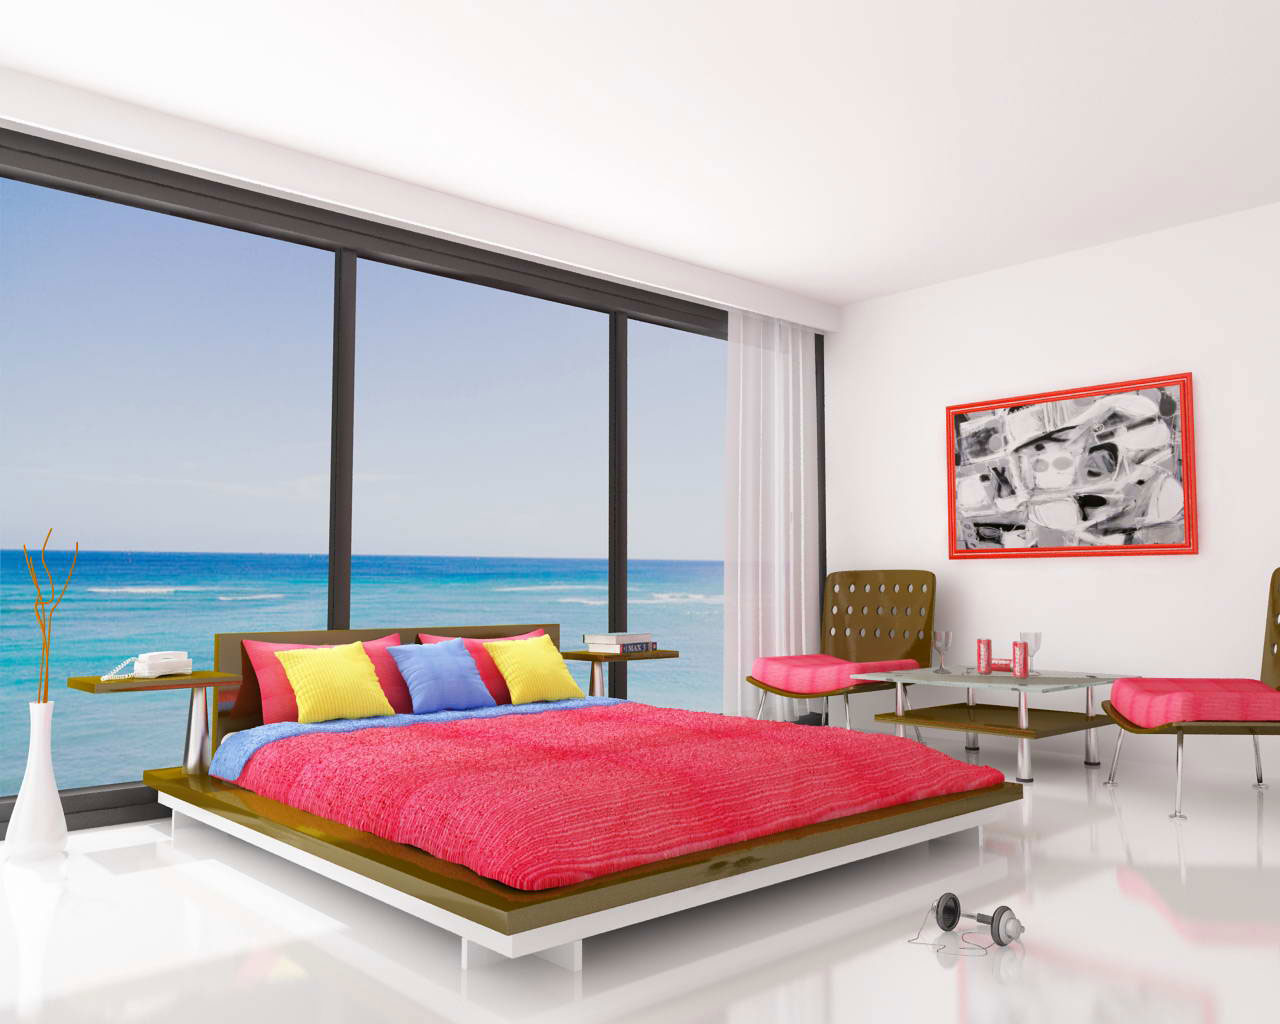 Simple bedroom designs for square rooms dream house for Beach design rooms